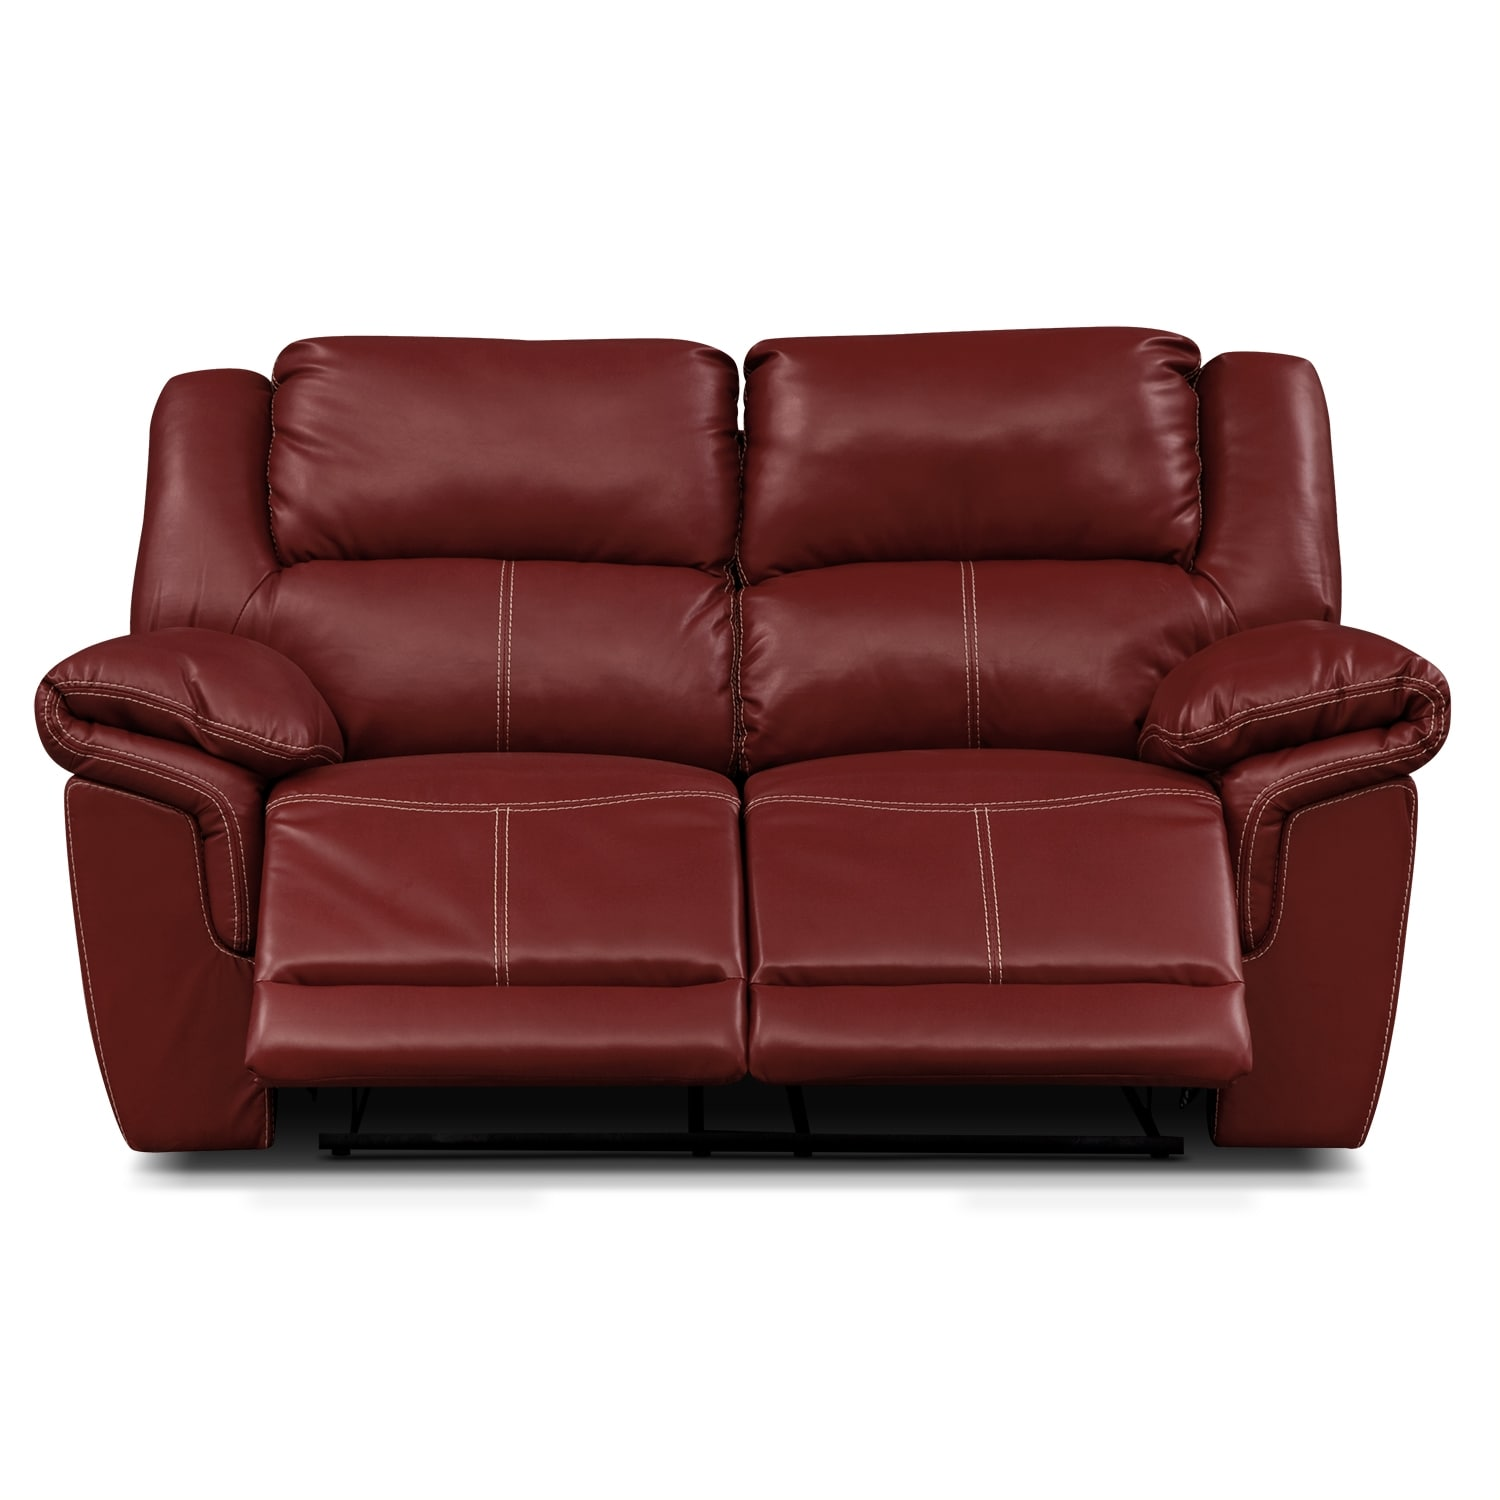 Jaguar ii leather dual reclining loveseat value city furniture Leather reclining sofa loveseat